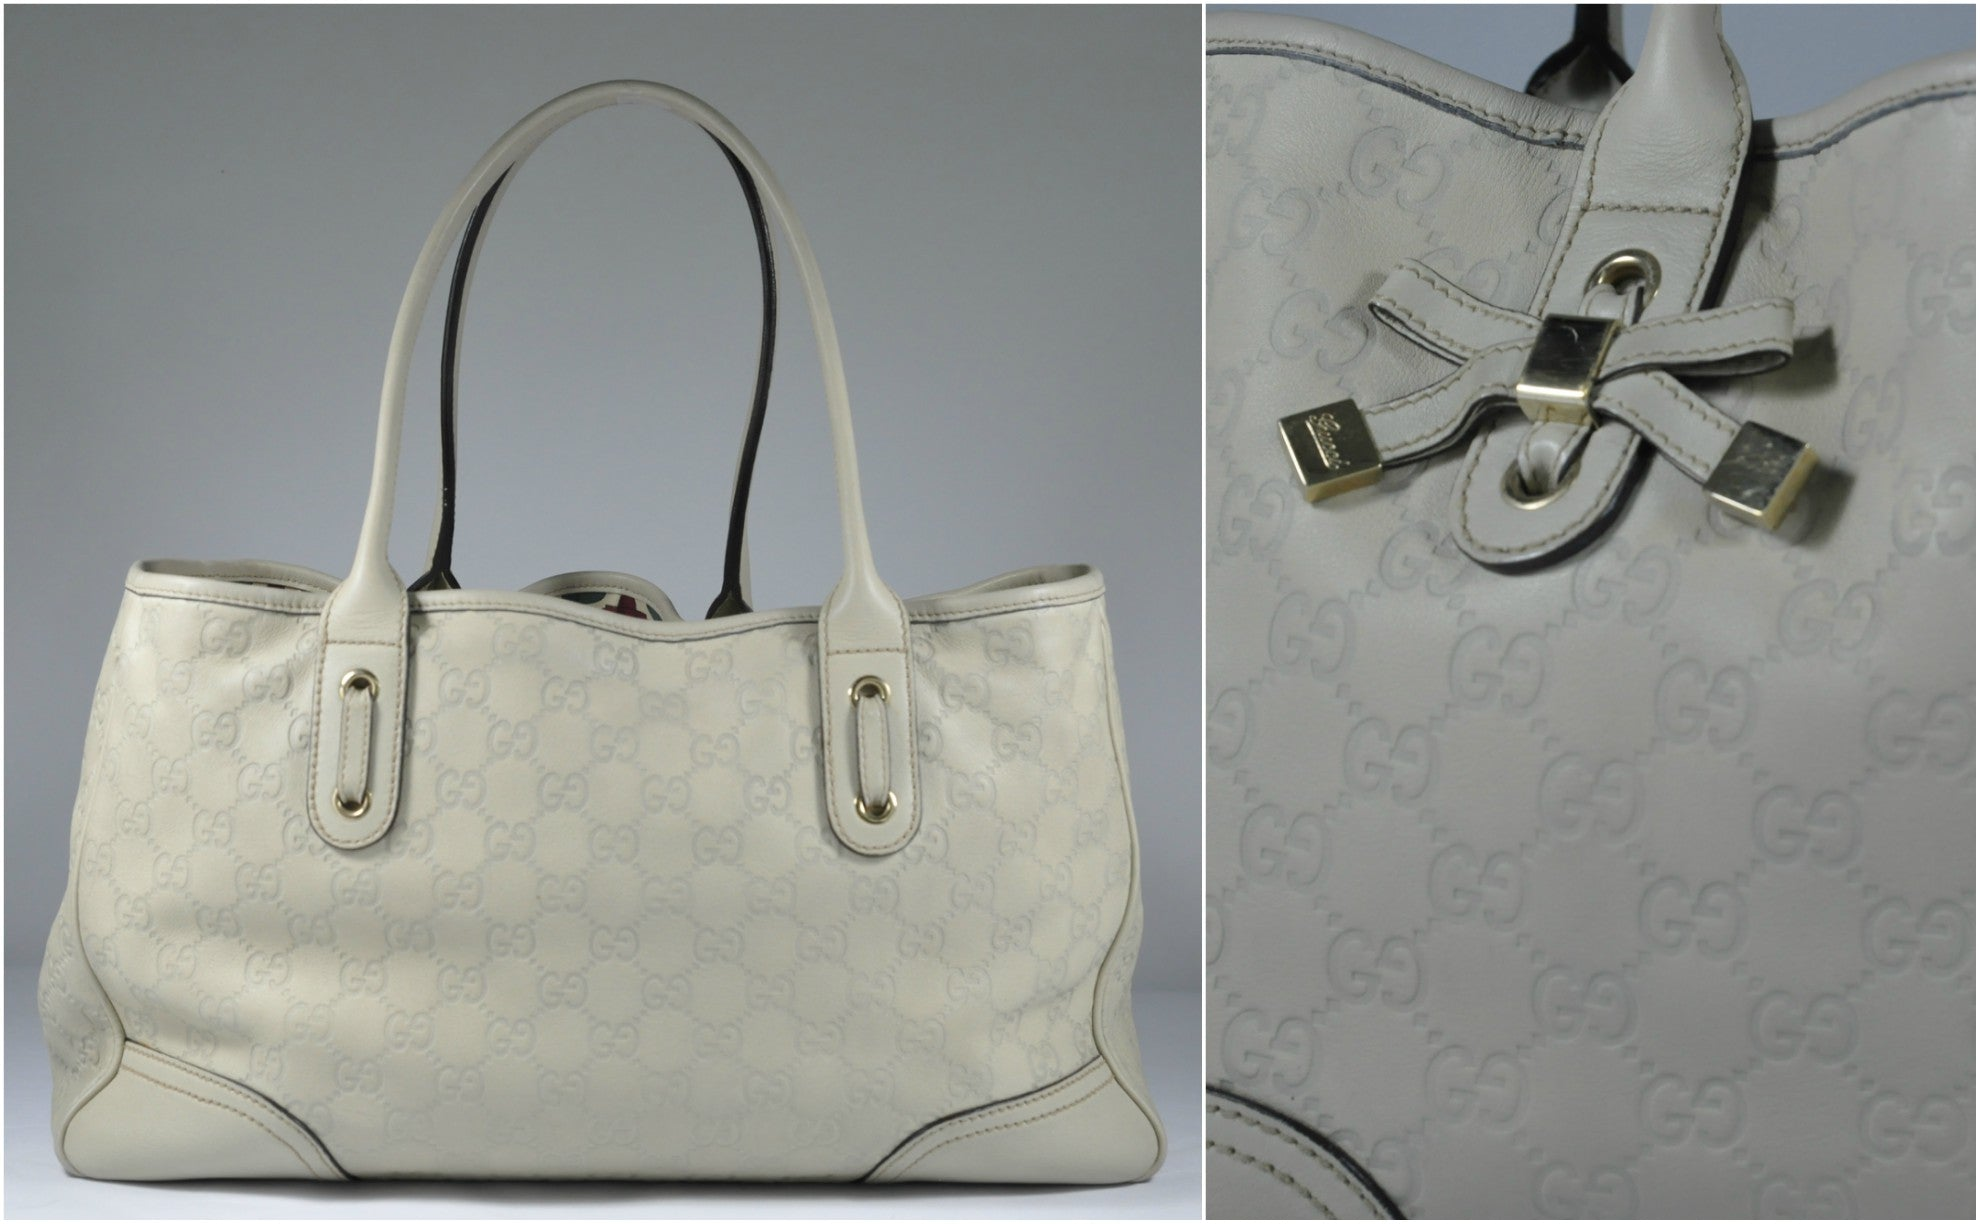 Ivory Guccissima Leather Princy Tote